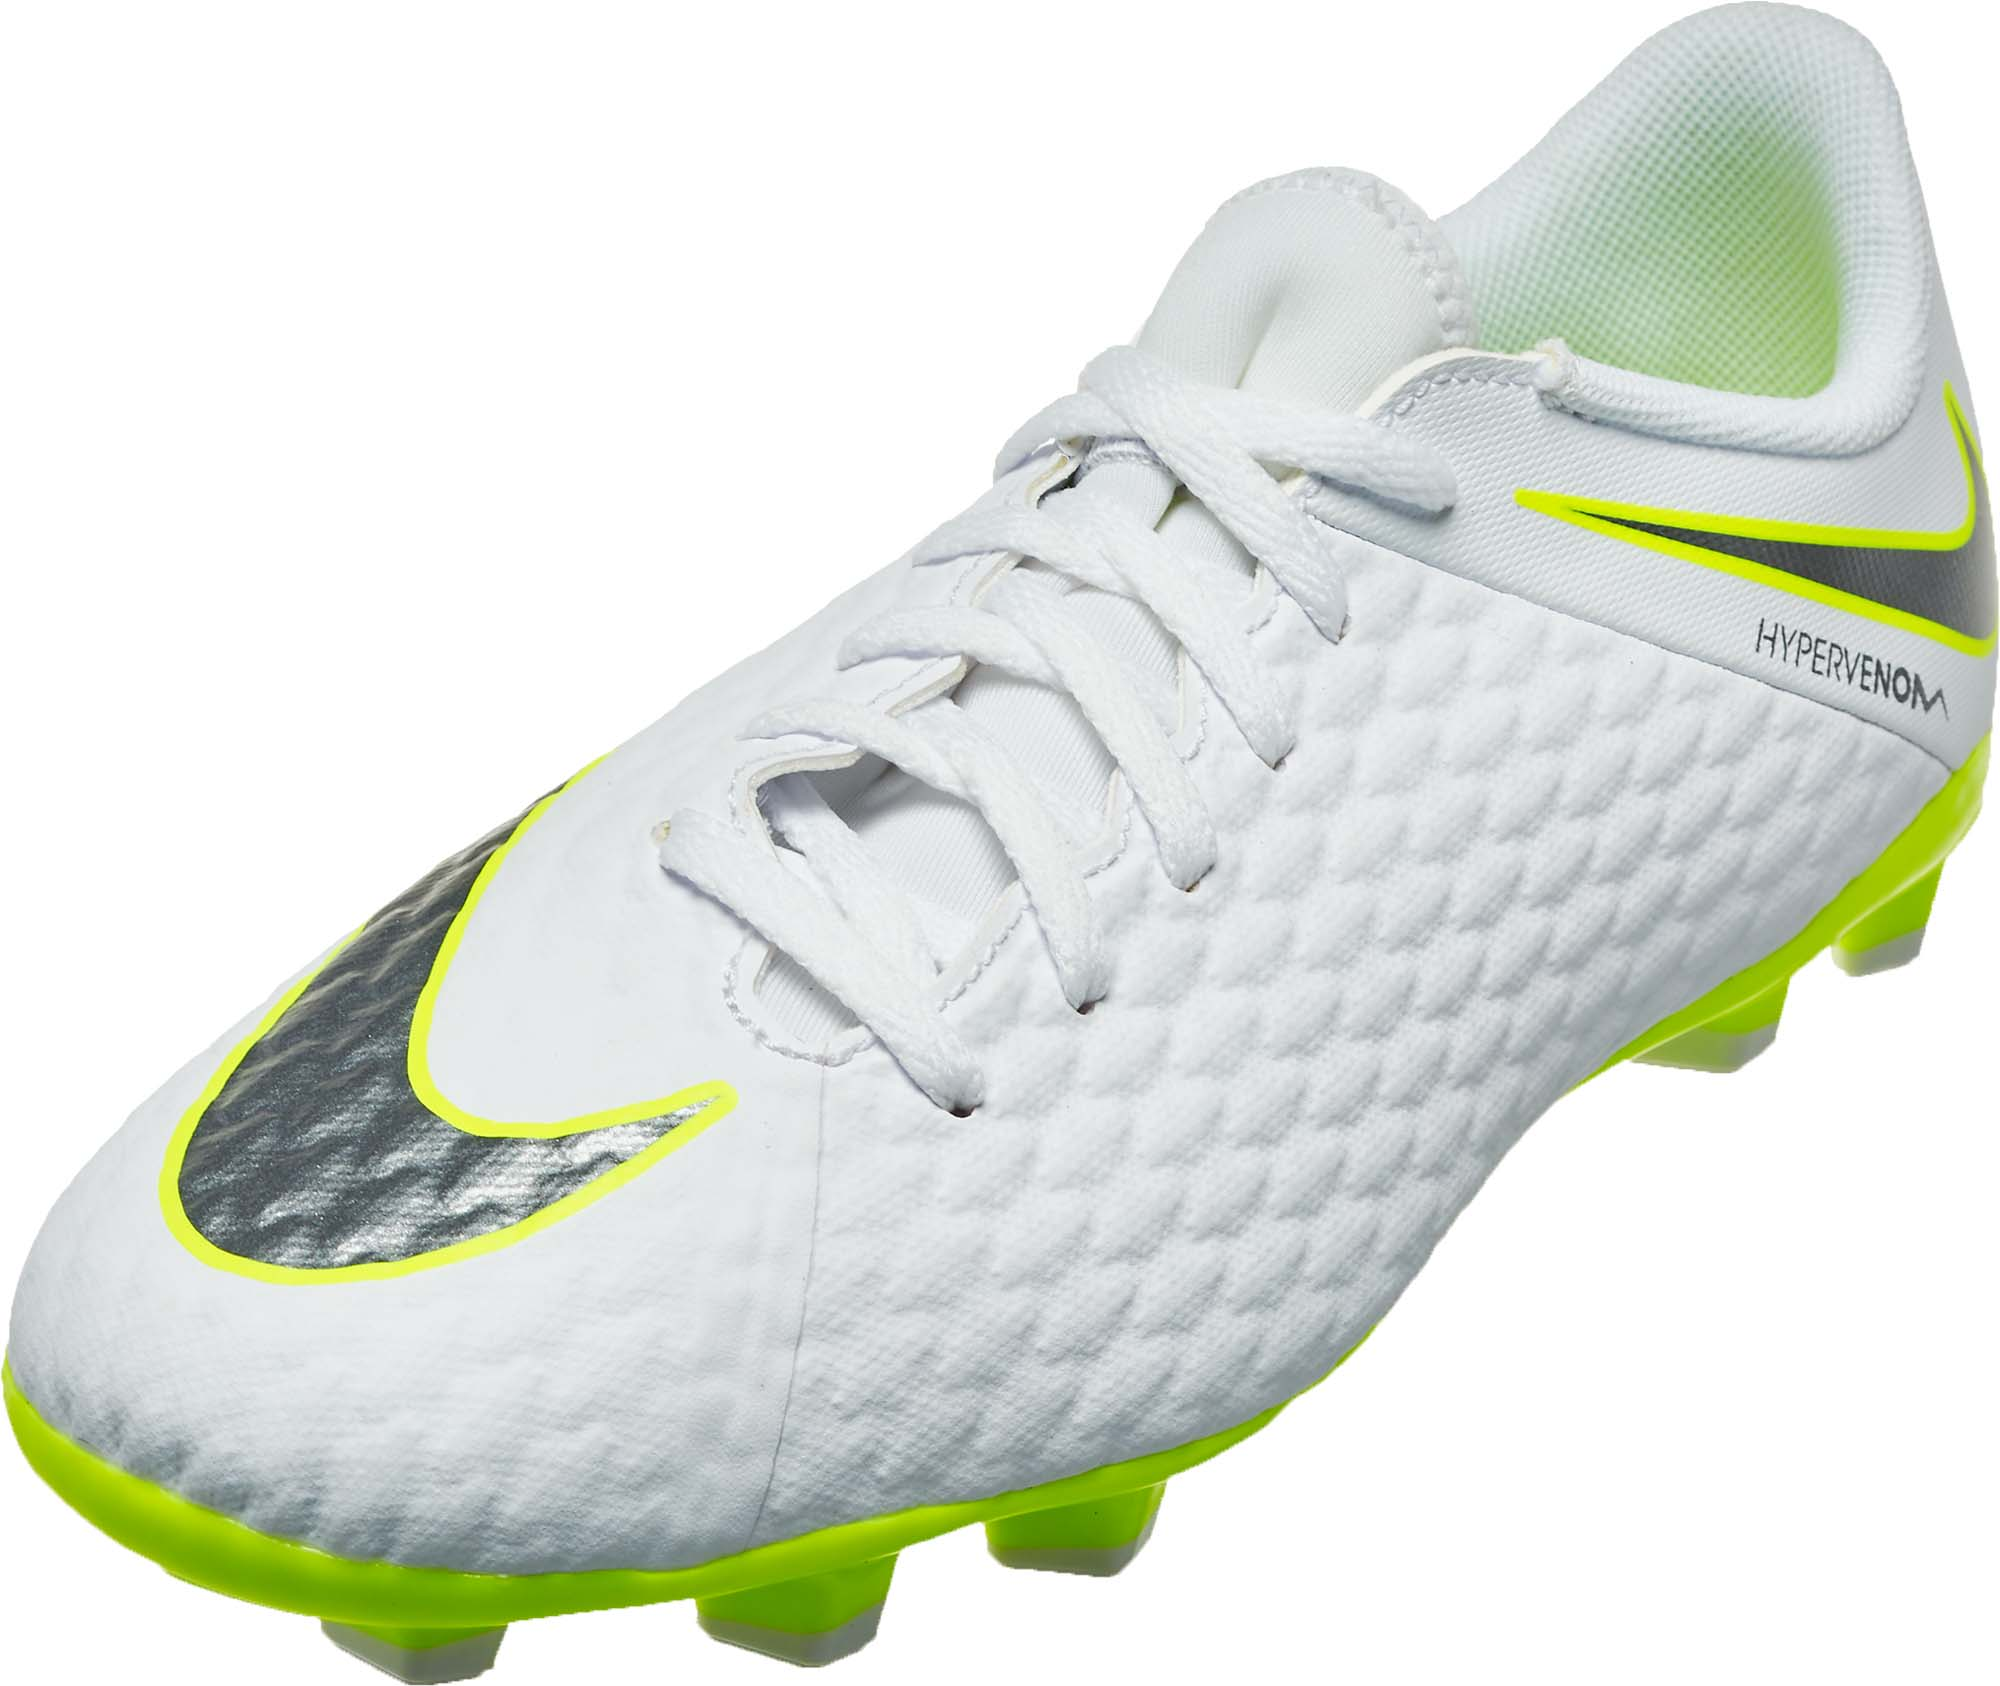 no sale tax new list sold worldwide Nike Hypervenom Phantom 3 Academy FG – Youth – White/Volt